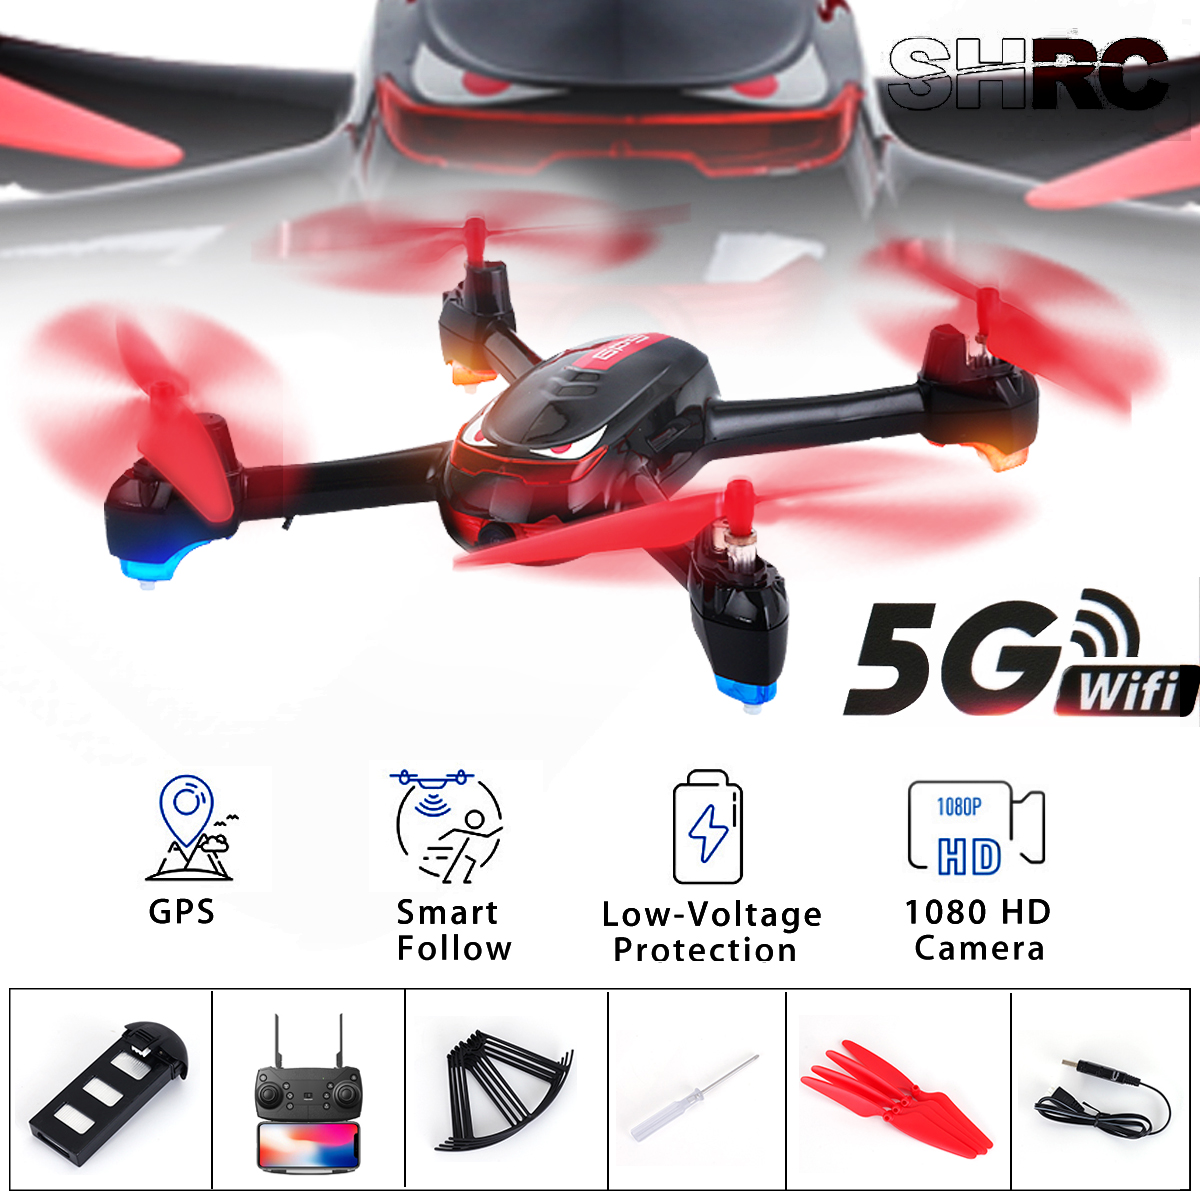 Quadcopter Mini Drone with Camera 300m GPS Smart Follow 5G Wifi FPV 2MP 1080P HD Camera Altitude Hold RC Drone SH2Quadcopter Mini Drone with Camera 300m GPS Smart Follow 5G Wifi FPV 2MP 1080P HD Camera Altitude Hold RC Drone SH2